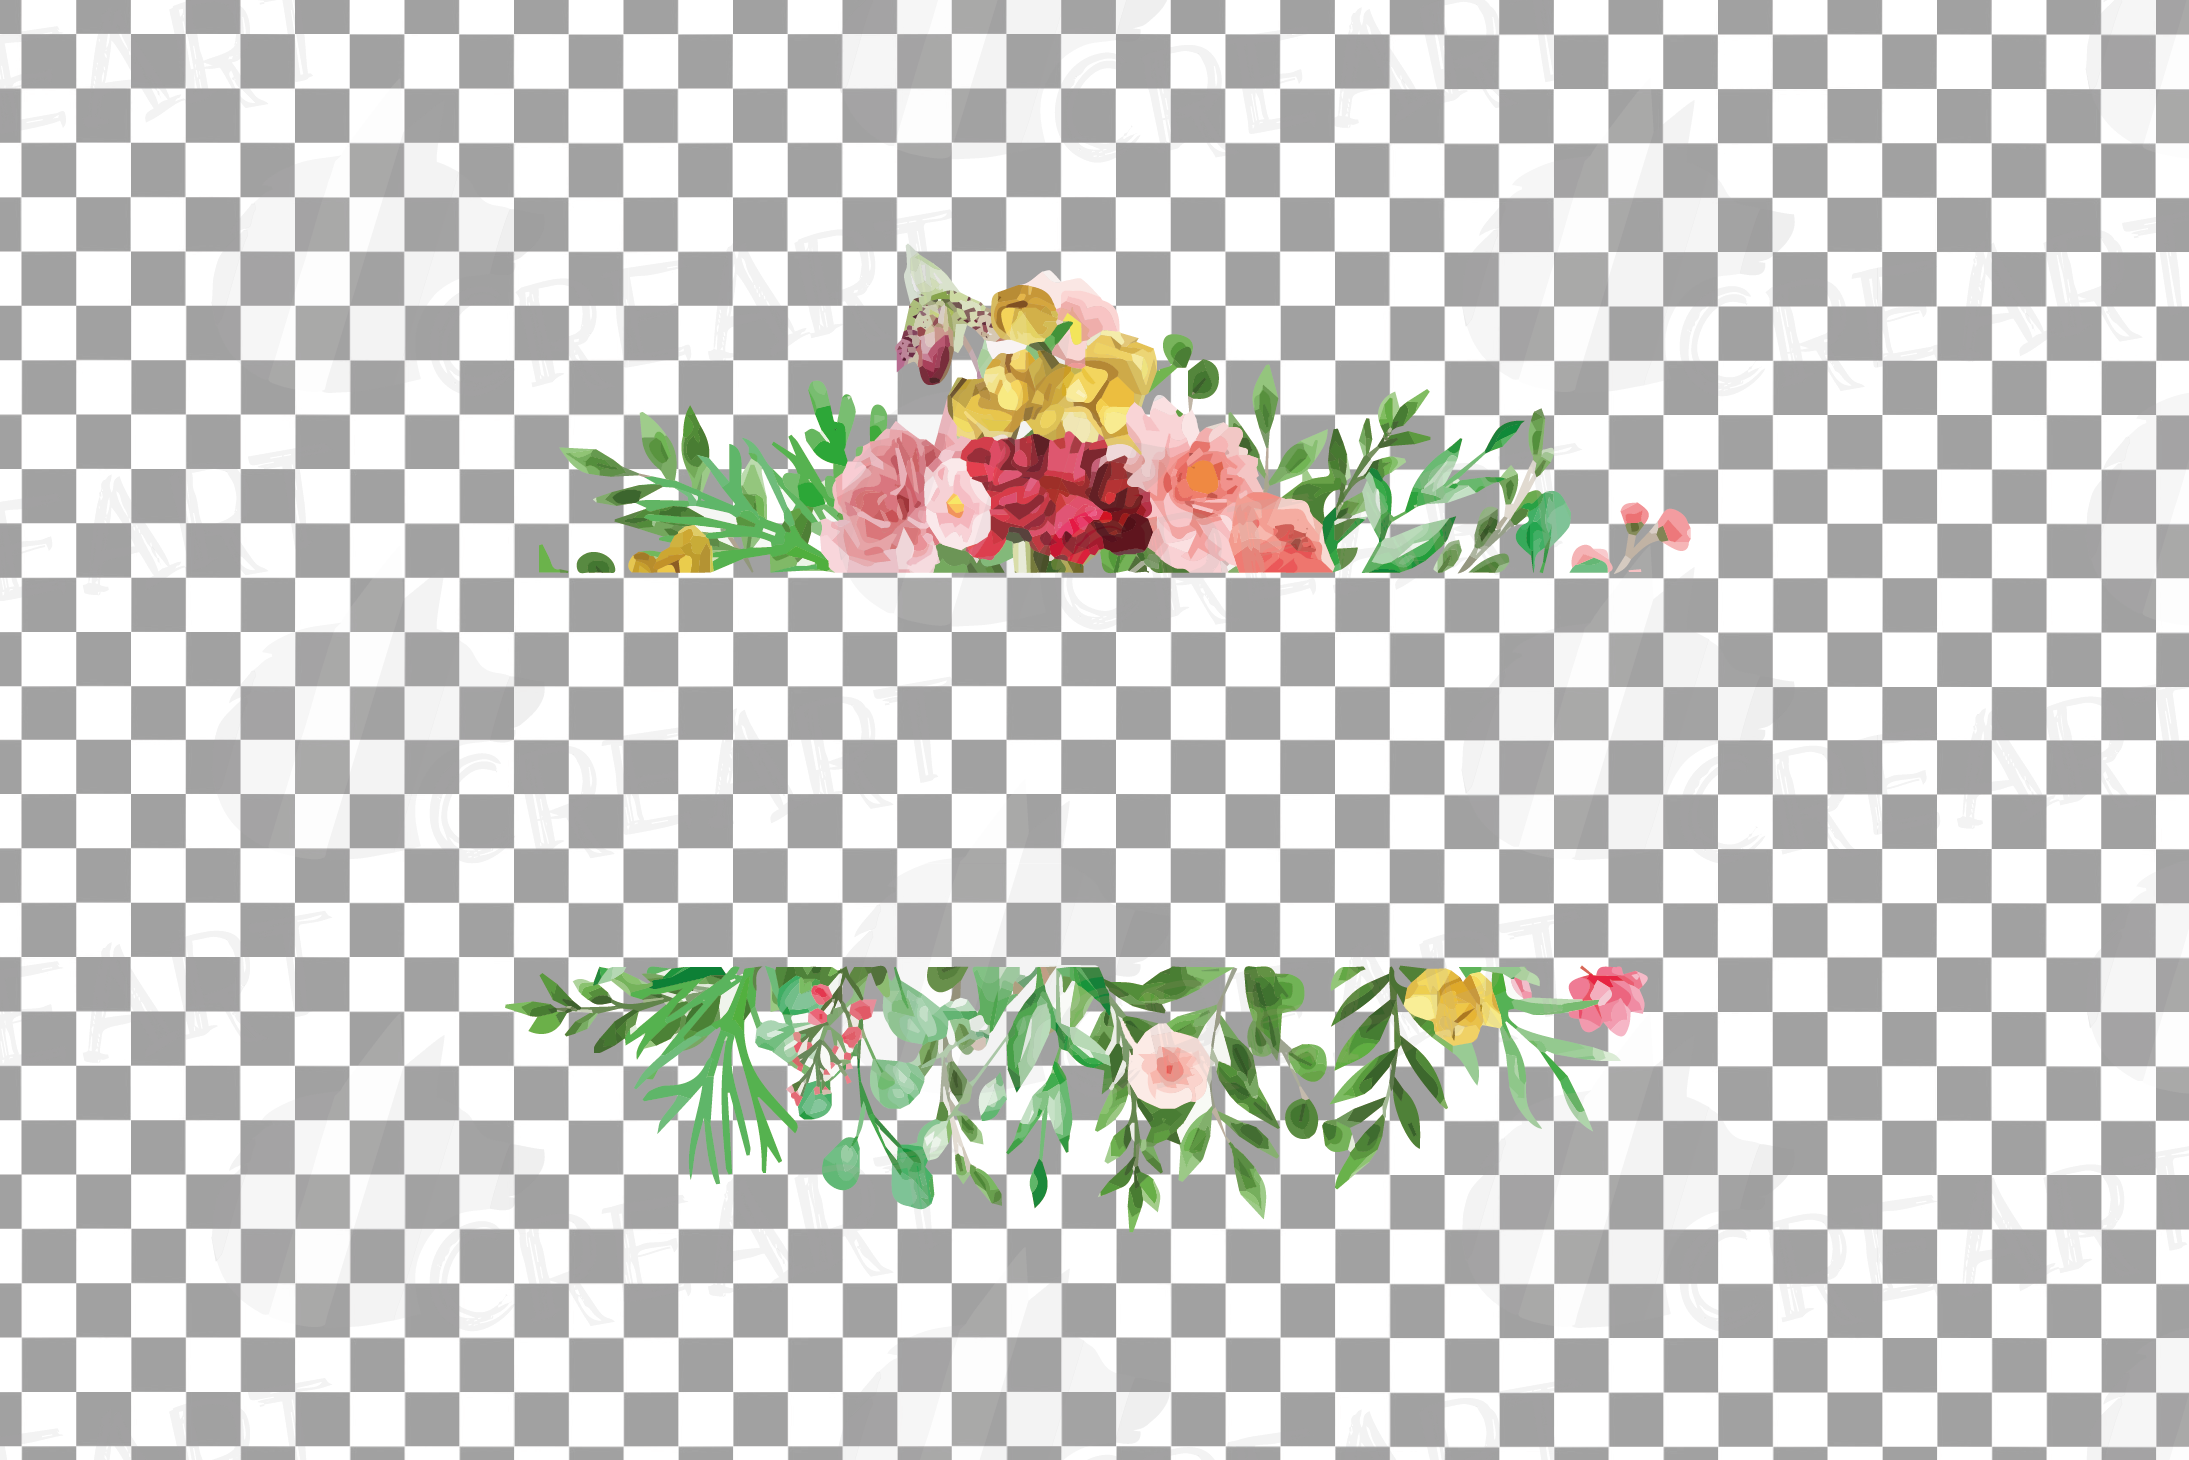 Watercolor floral floral frames and borders clip art pack example image 26